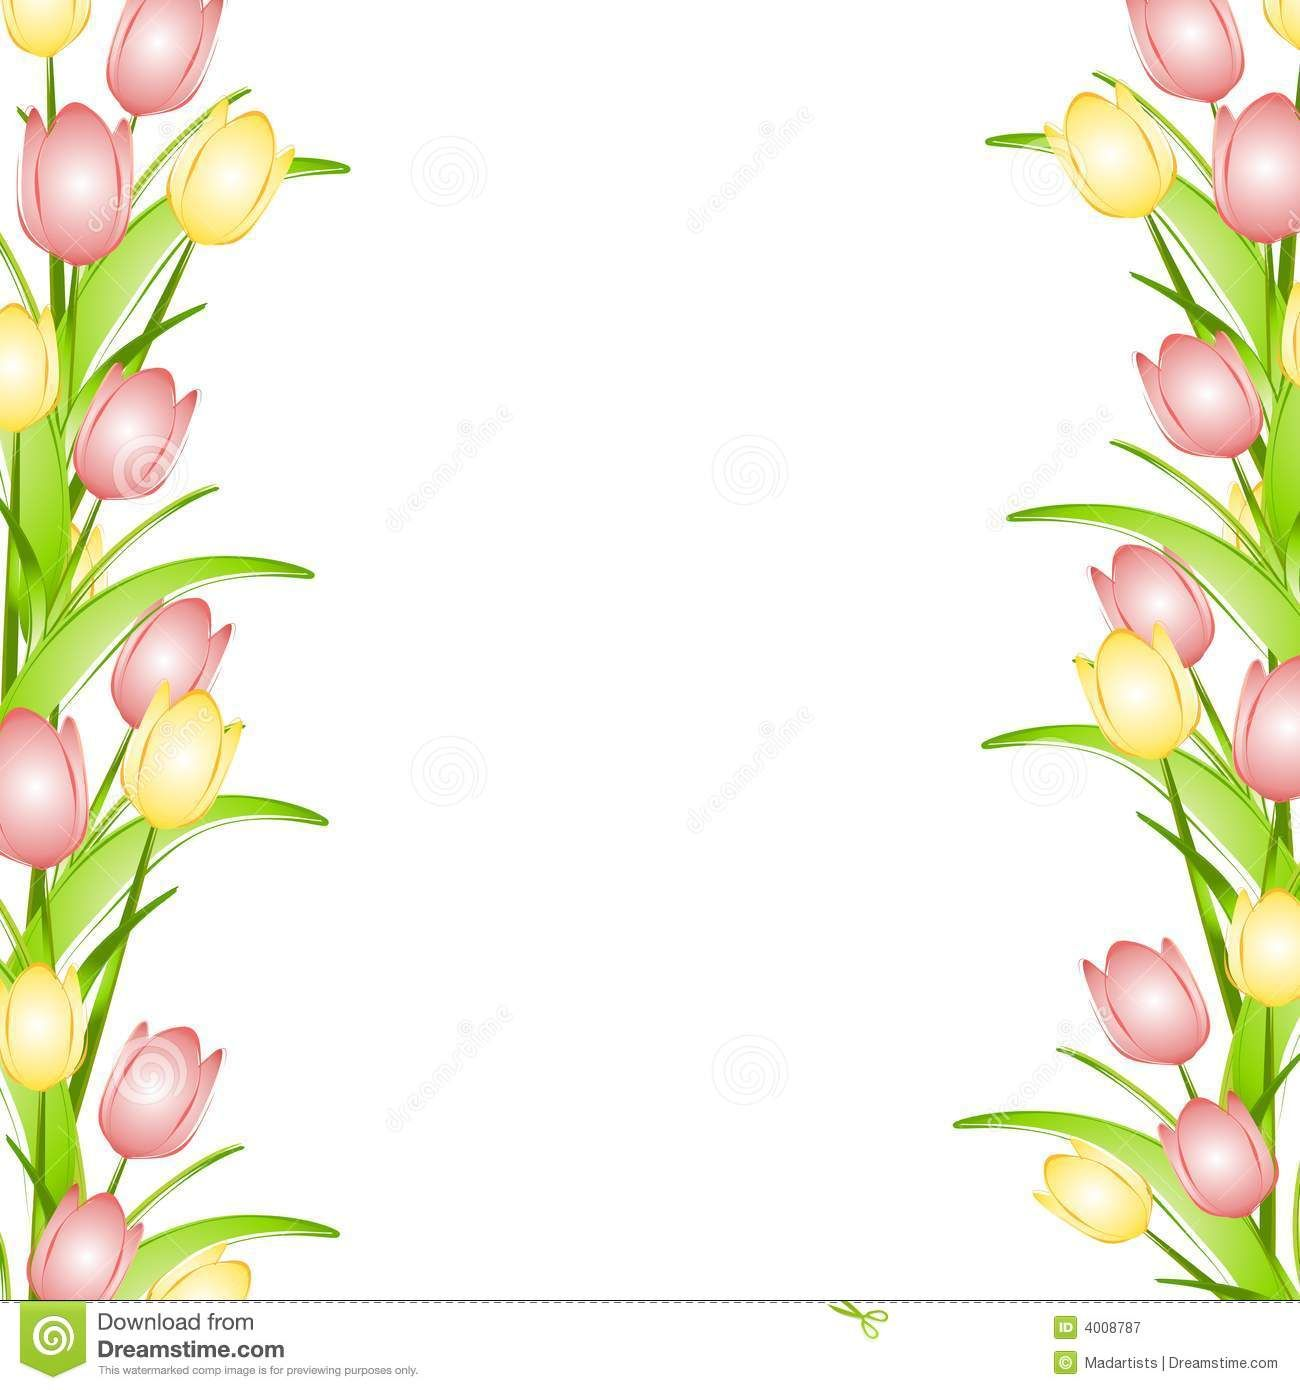 Pink Yellow Spring Tulips Flower Border Free Flower Clipart Flower Border Tulips Flowers